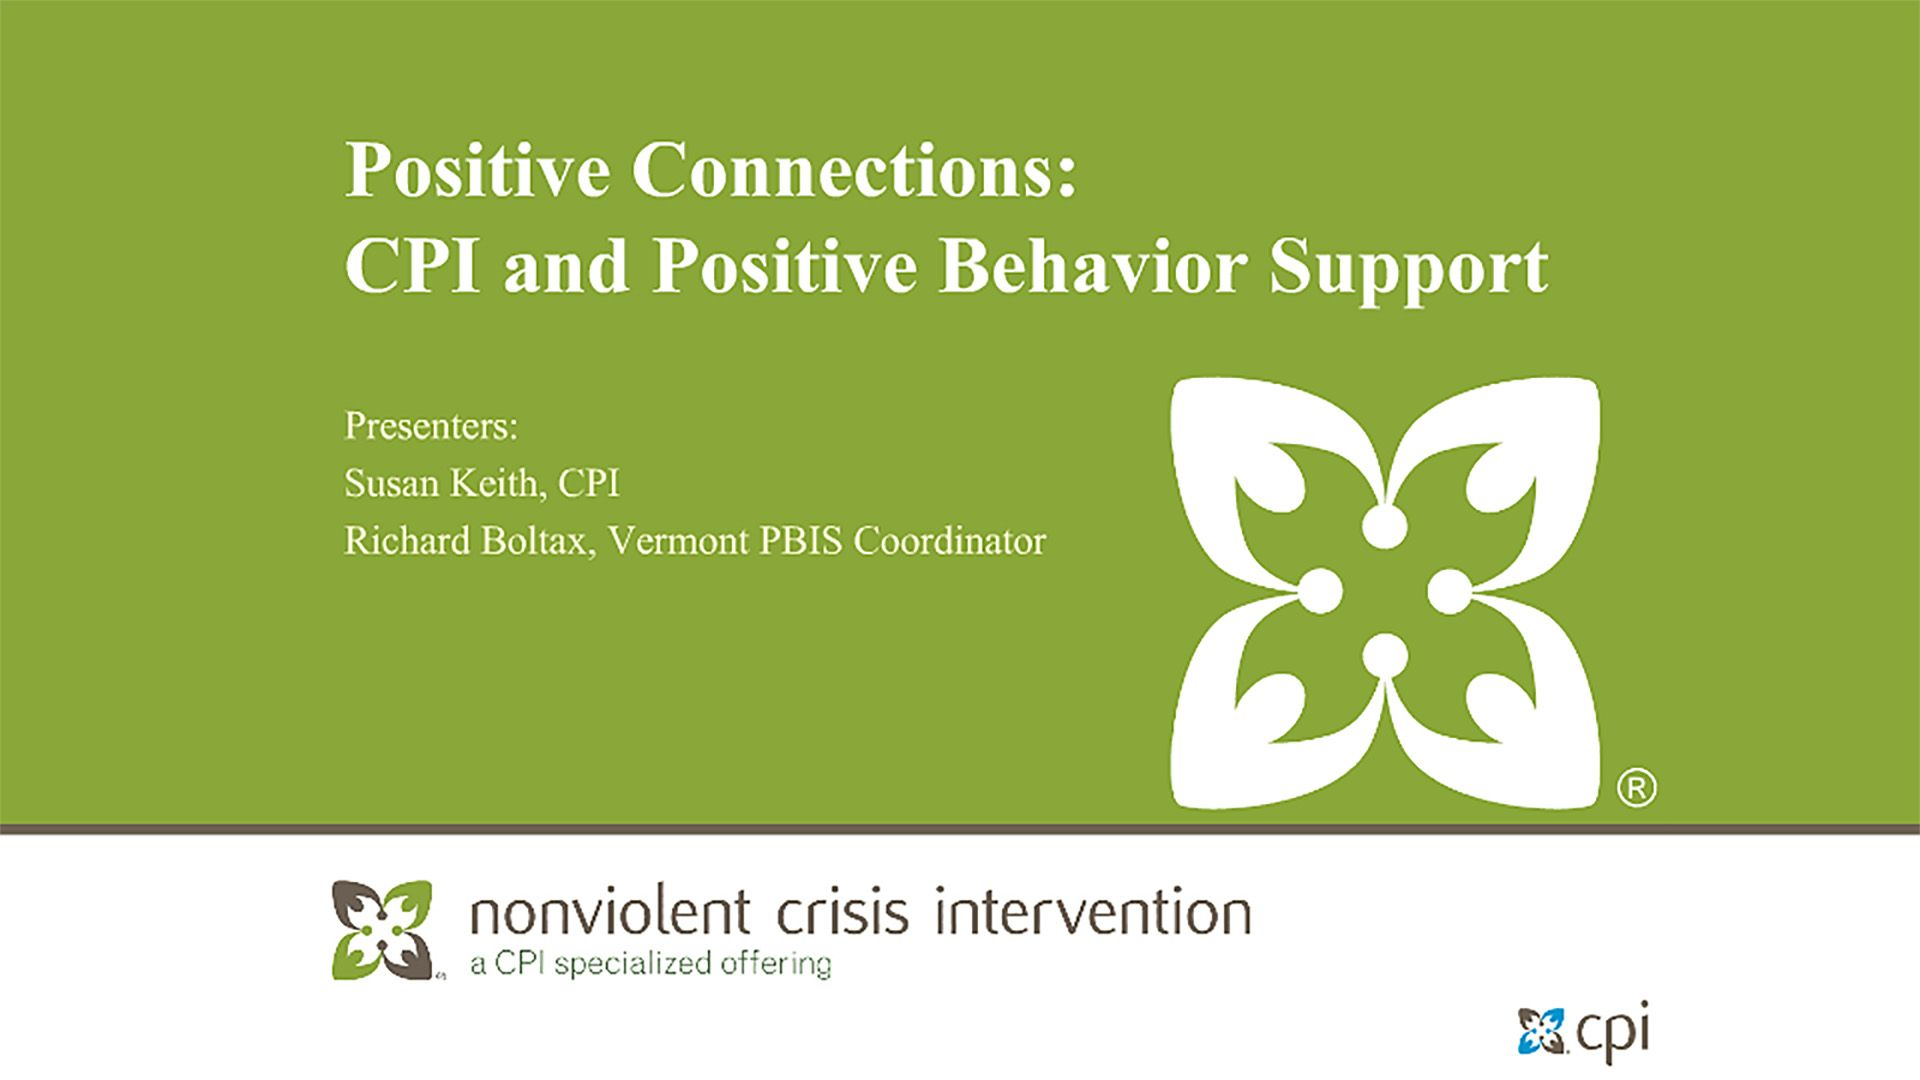 Positive Connections: CPI and Positive Behavior Support